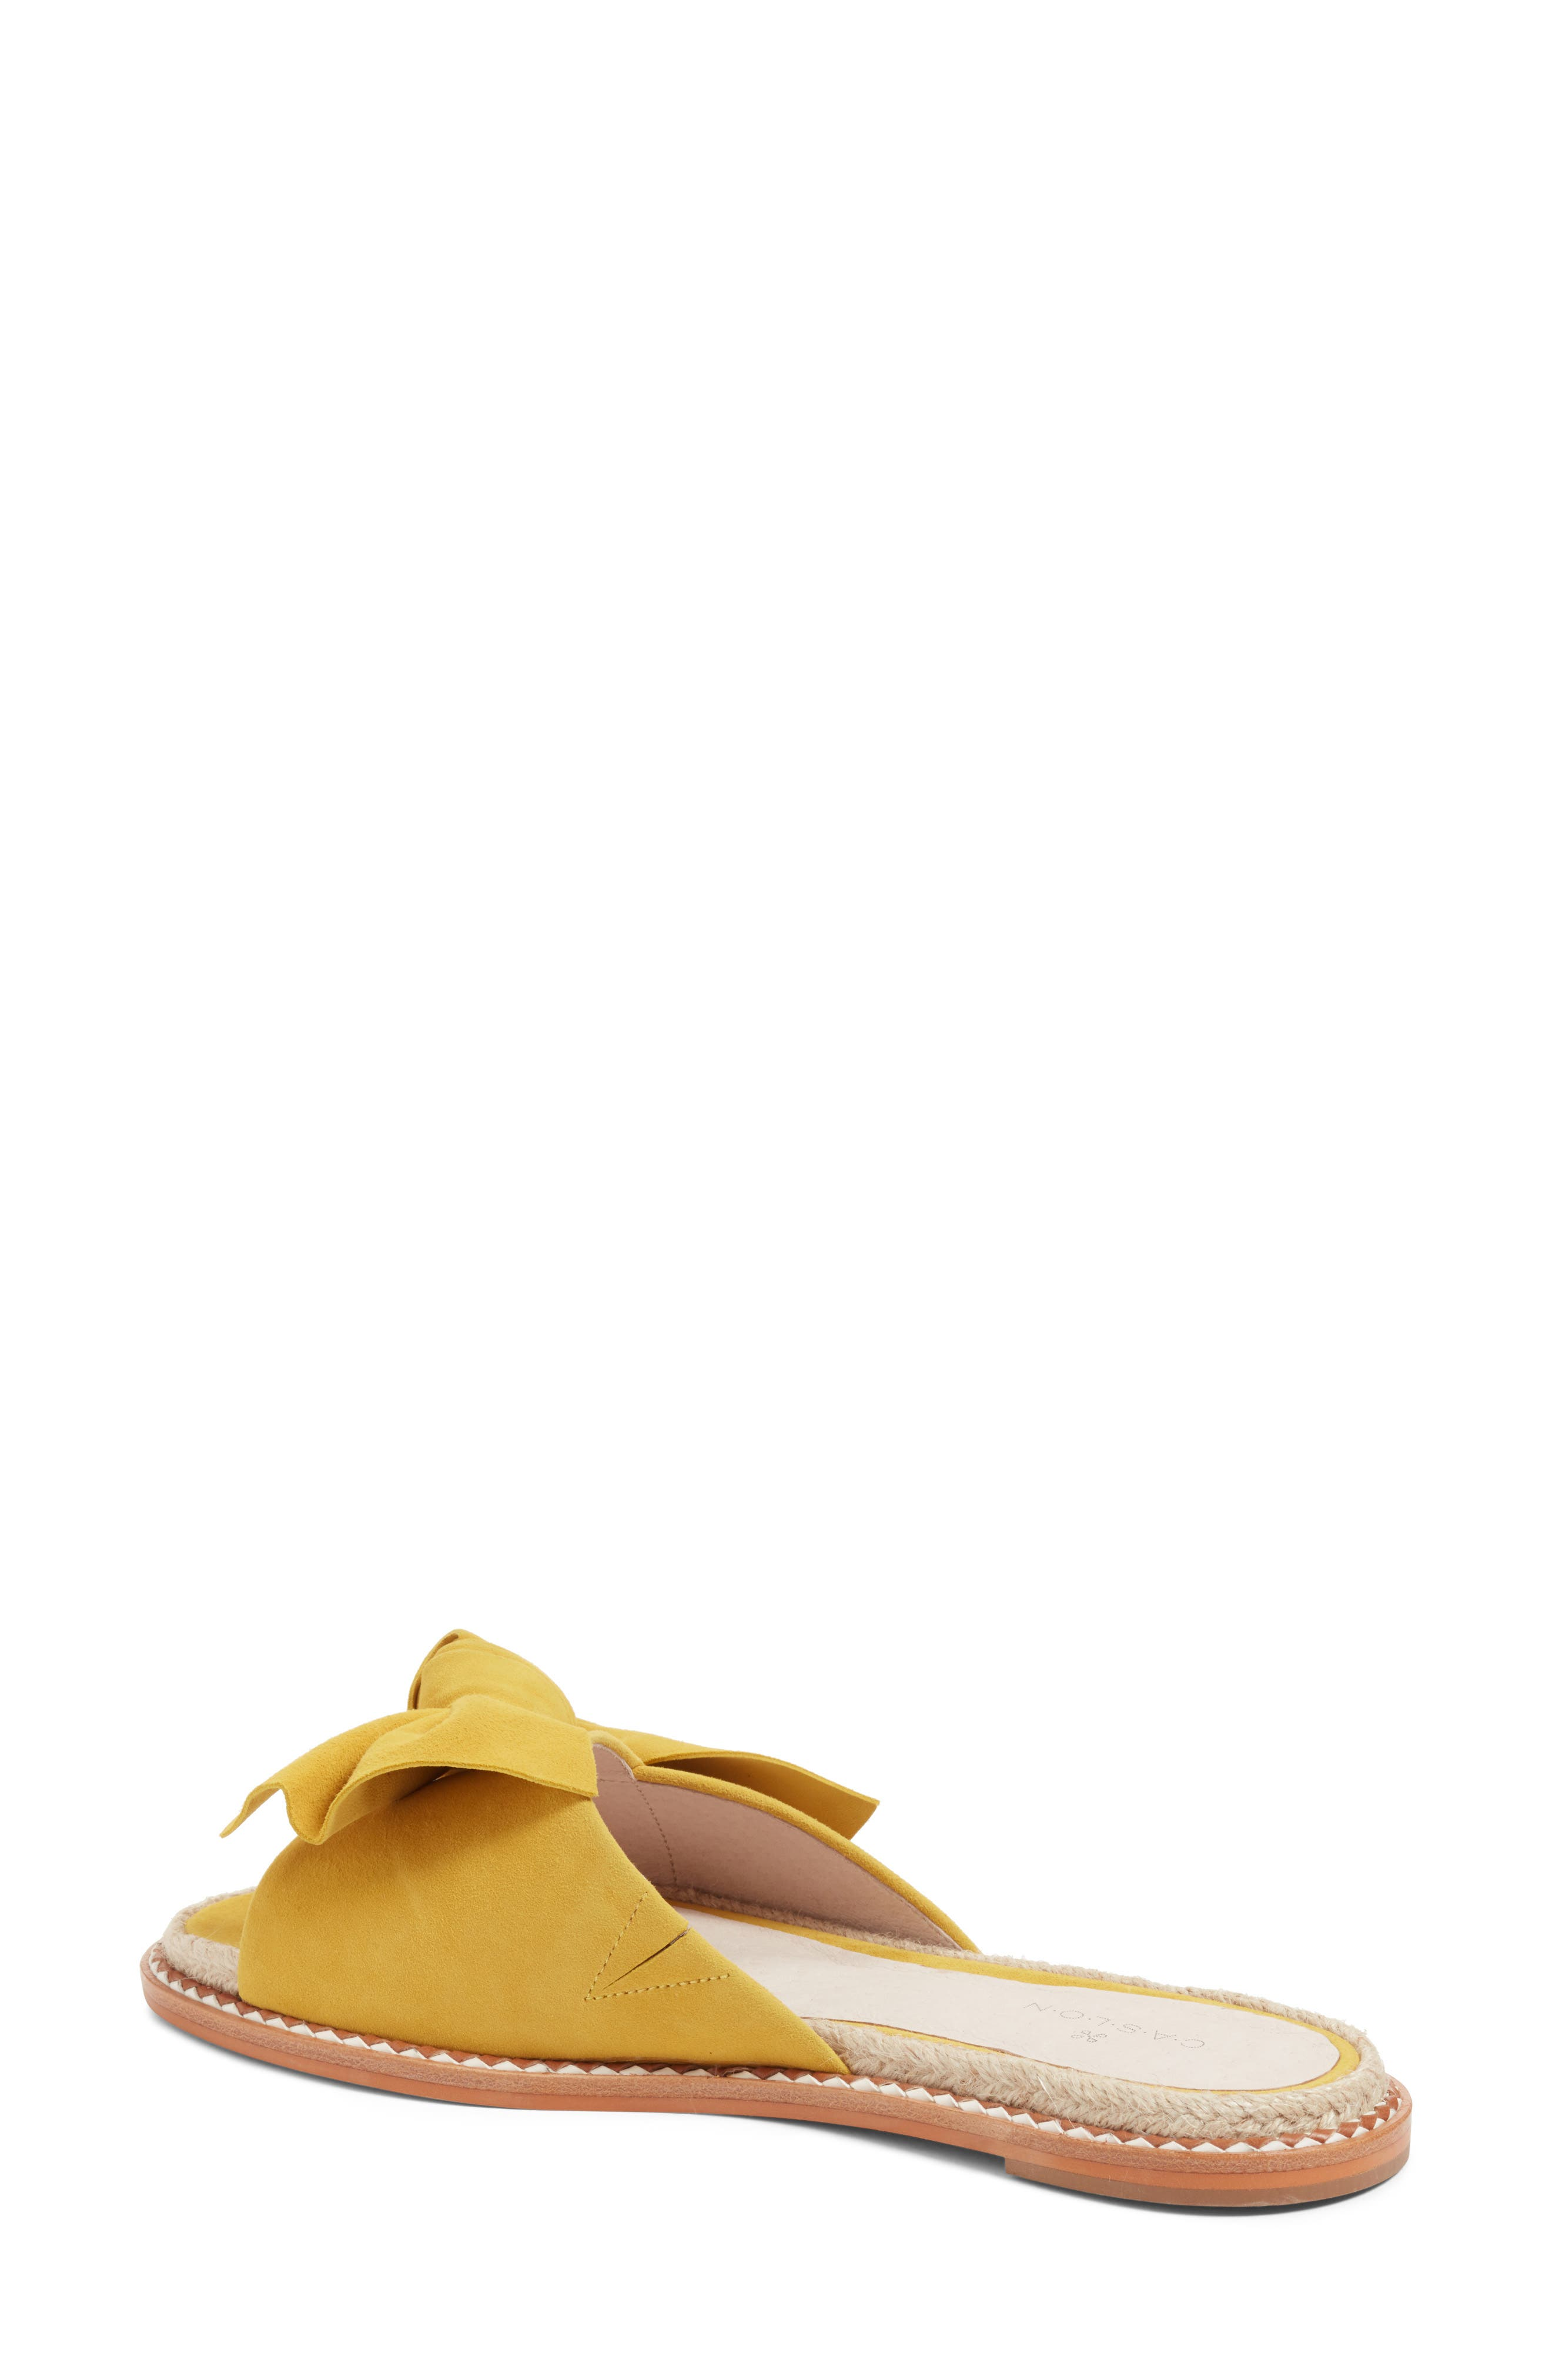 Darcie Slide Sandal,                             Alternate thumbnail 2, color,                             Mustard Suede